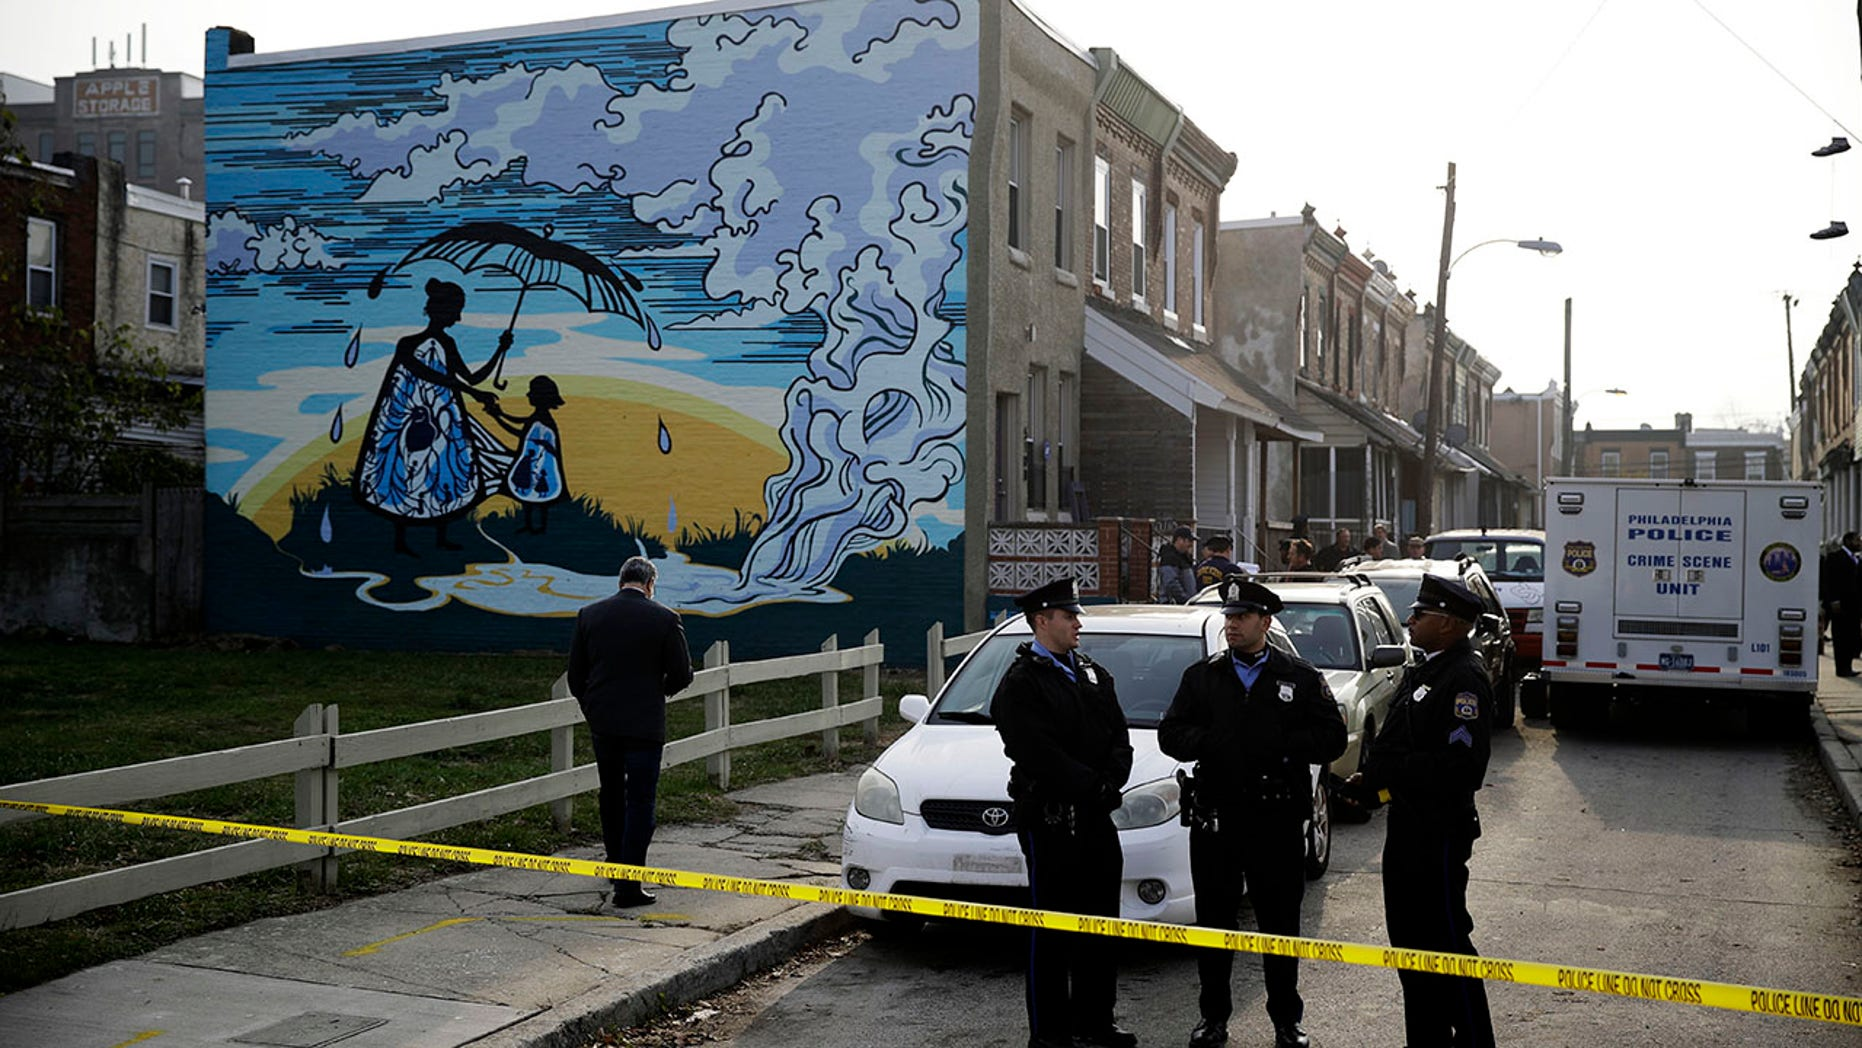 Police gather at the scene of a fatal shooting in the center row home in Philadelphia. (AP)